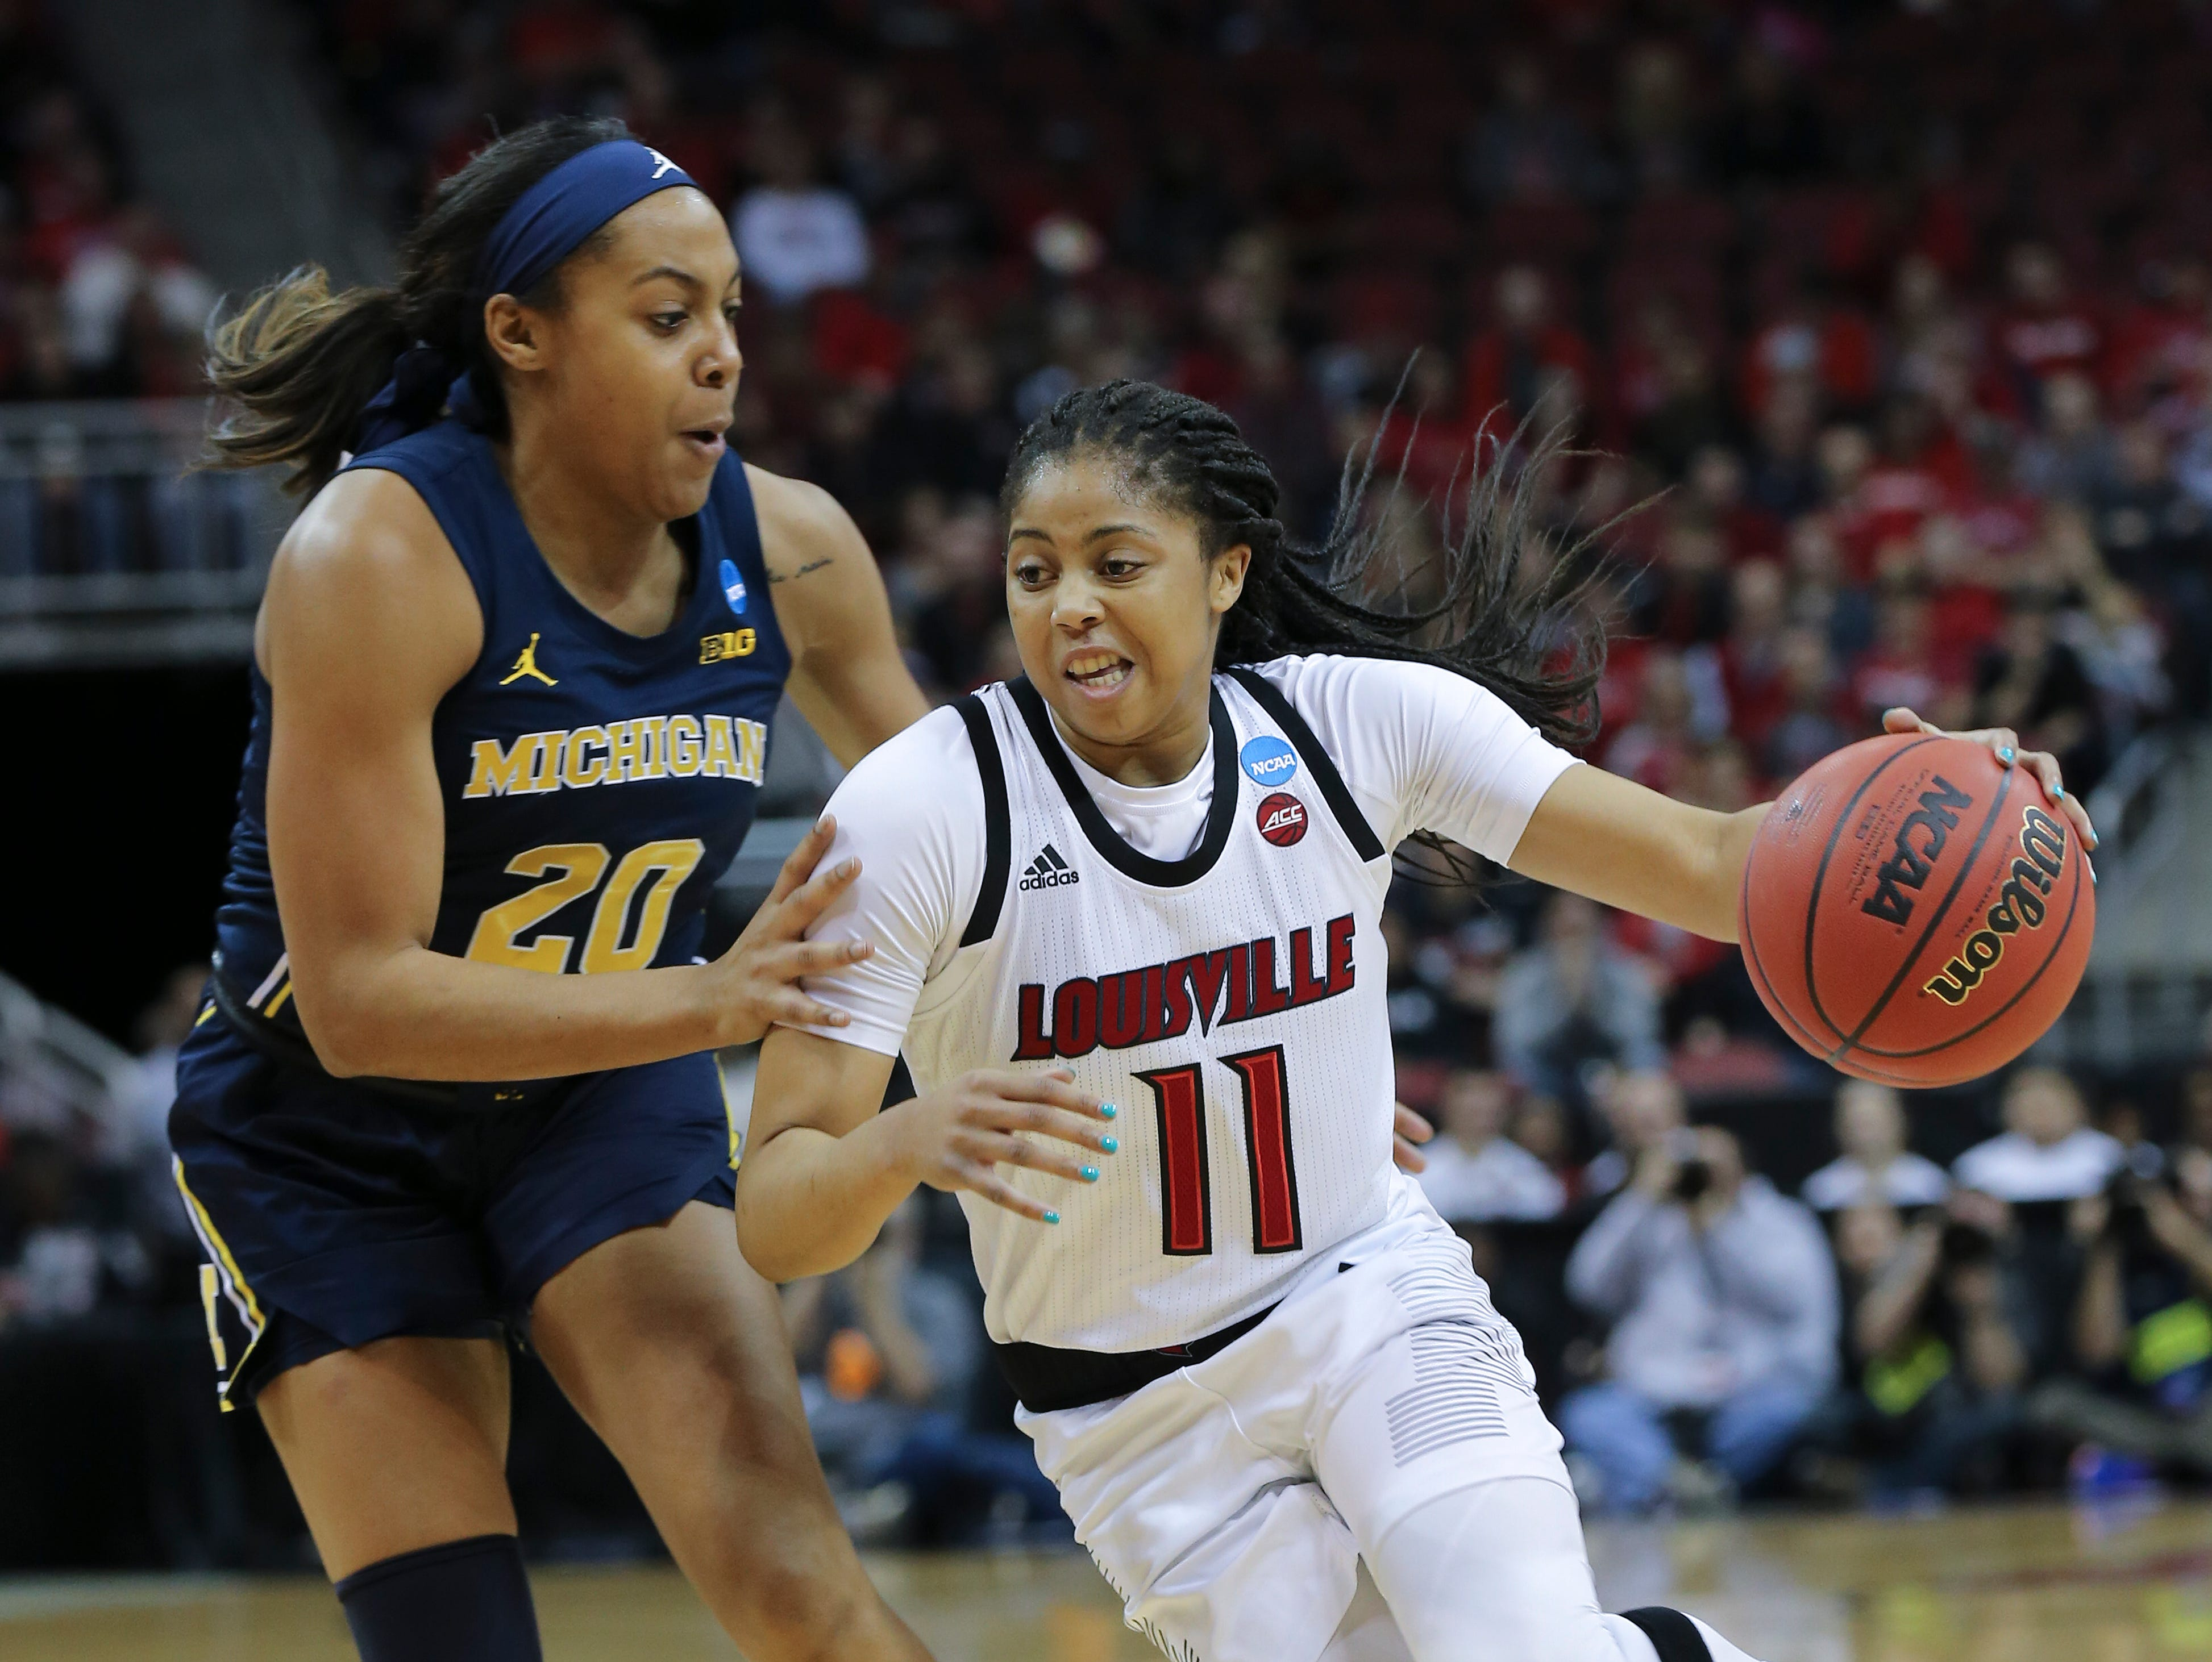 U of L's Arica Carter (11) drove against Michigan's Deja Church (20) in the second round of their NCAA Tournament game at the Yum Center.  Mar. 24, 2019